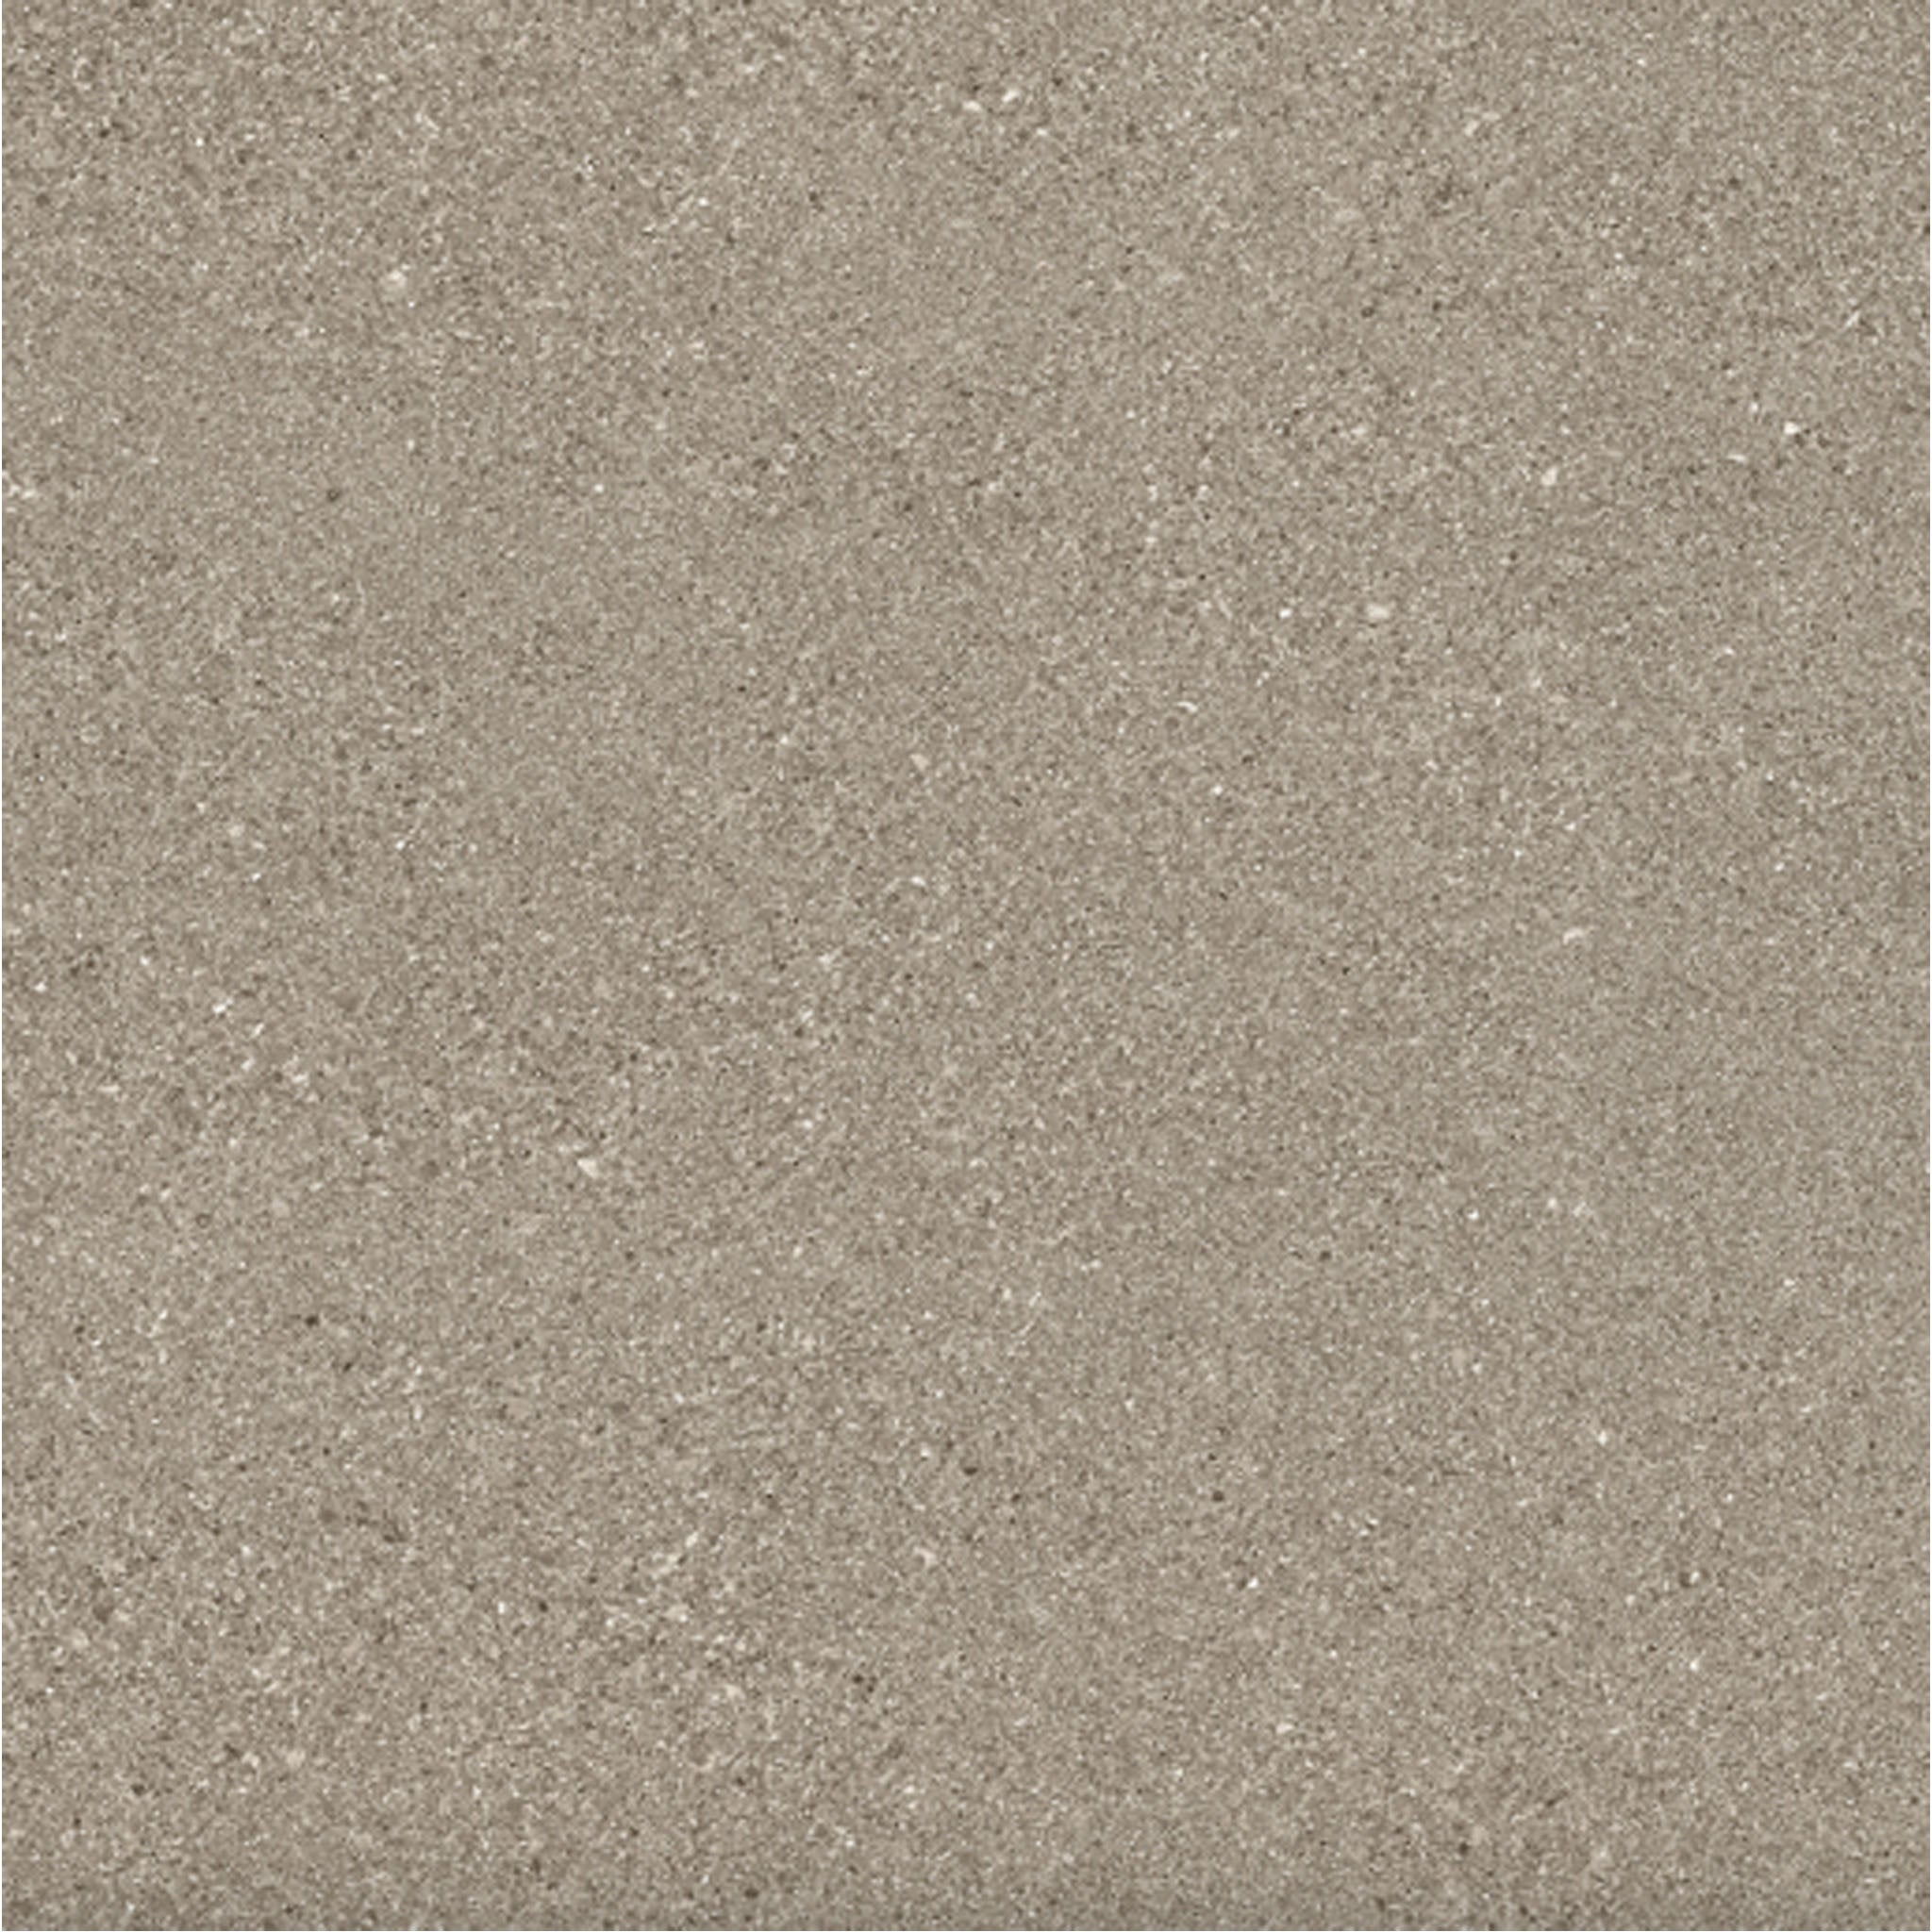 Grain Stone by Ergon Fine Grain Taupe